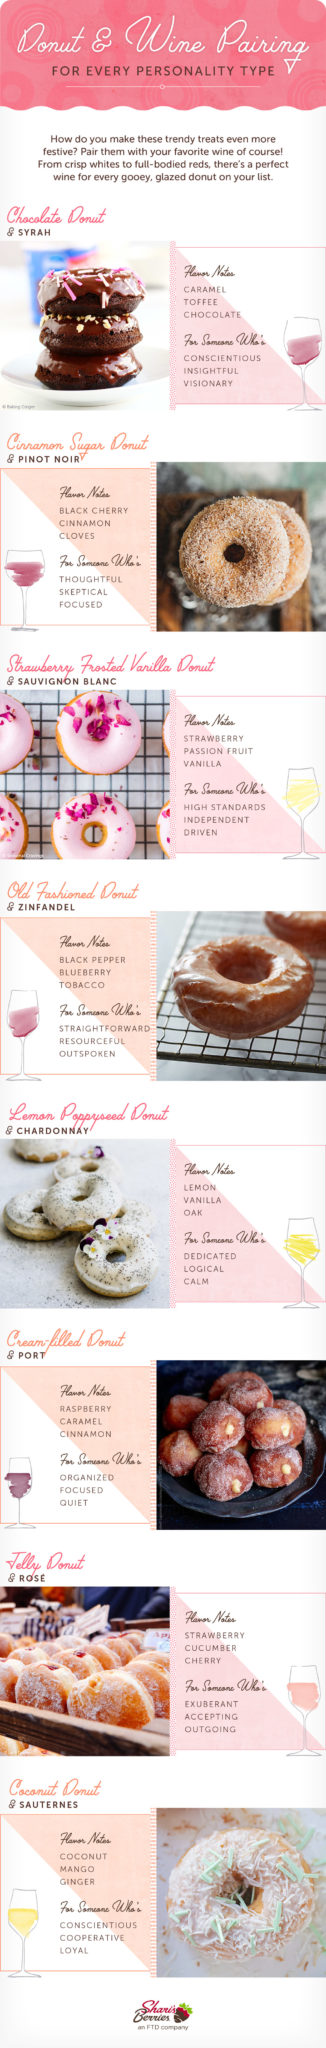 wine and donut pairing guide